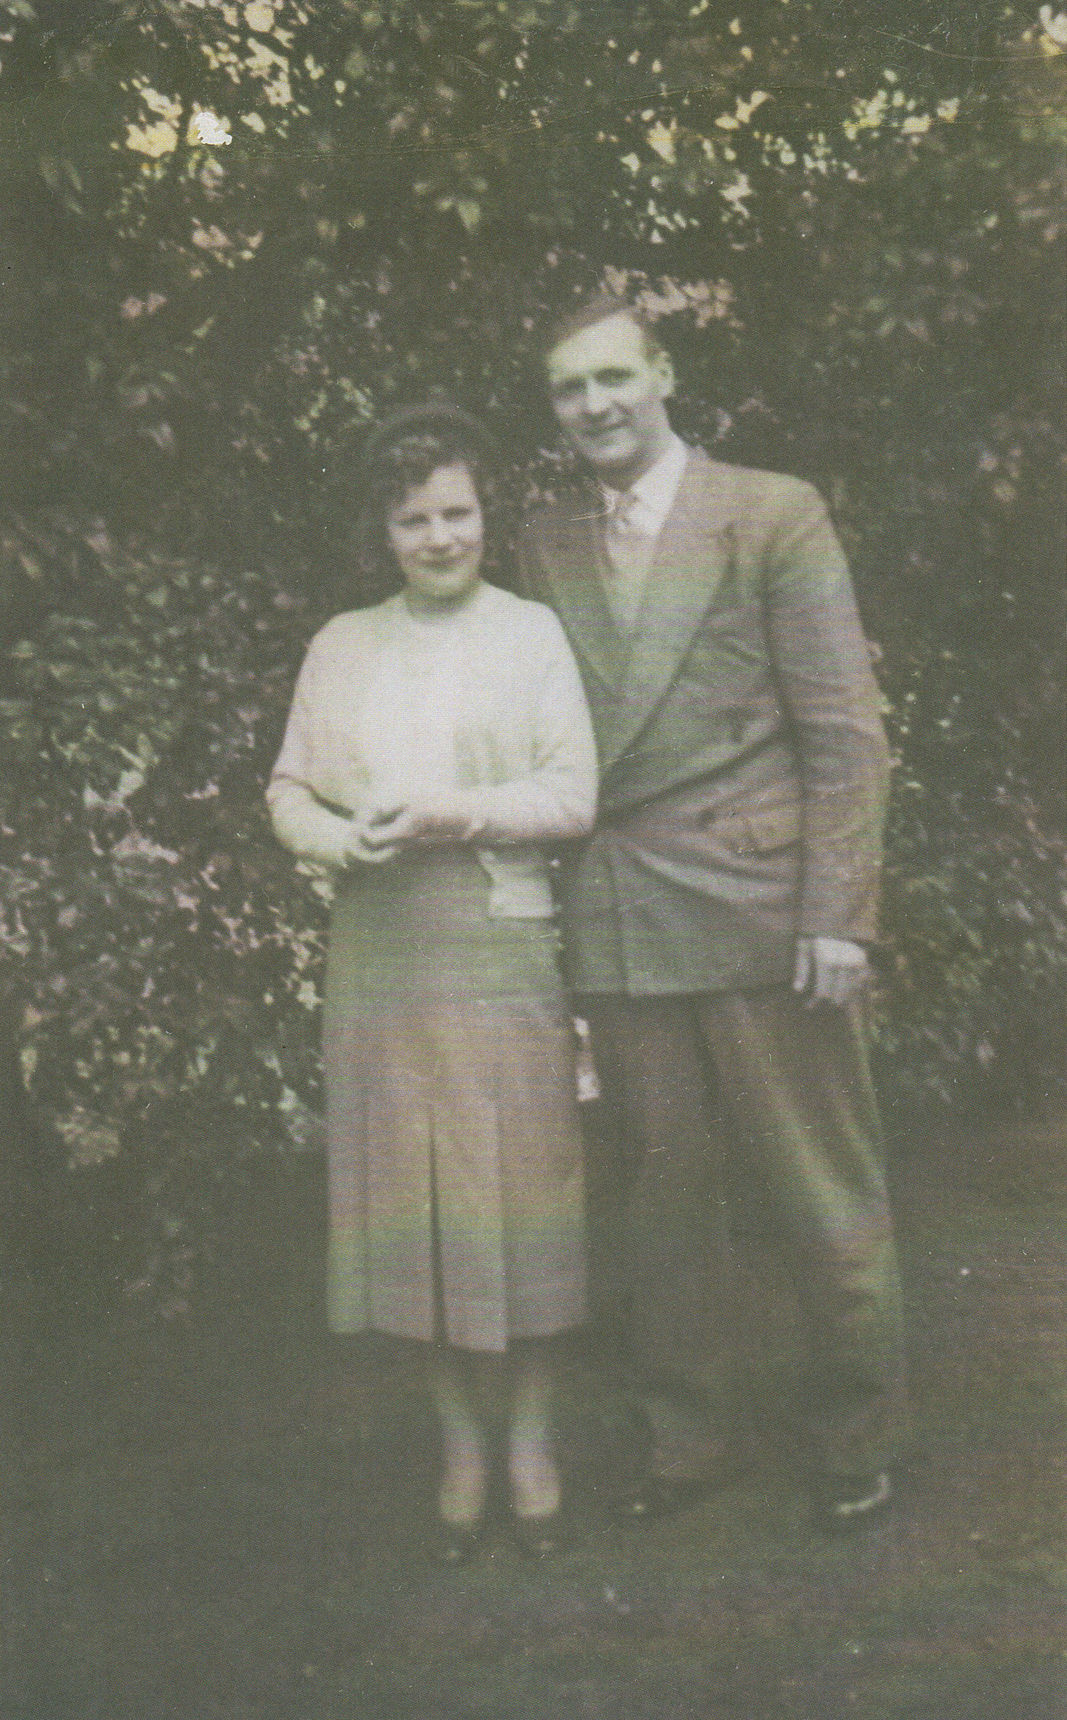 My Mother and Father, Nancy & Robert Burke pictured in the Botanical Garden.